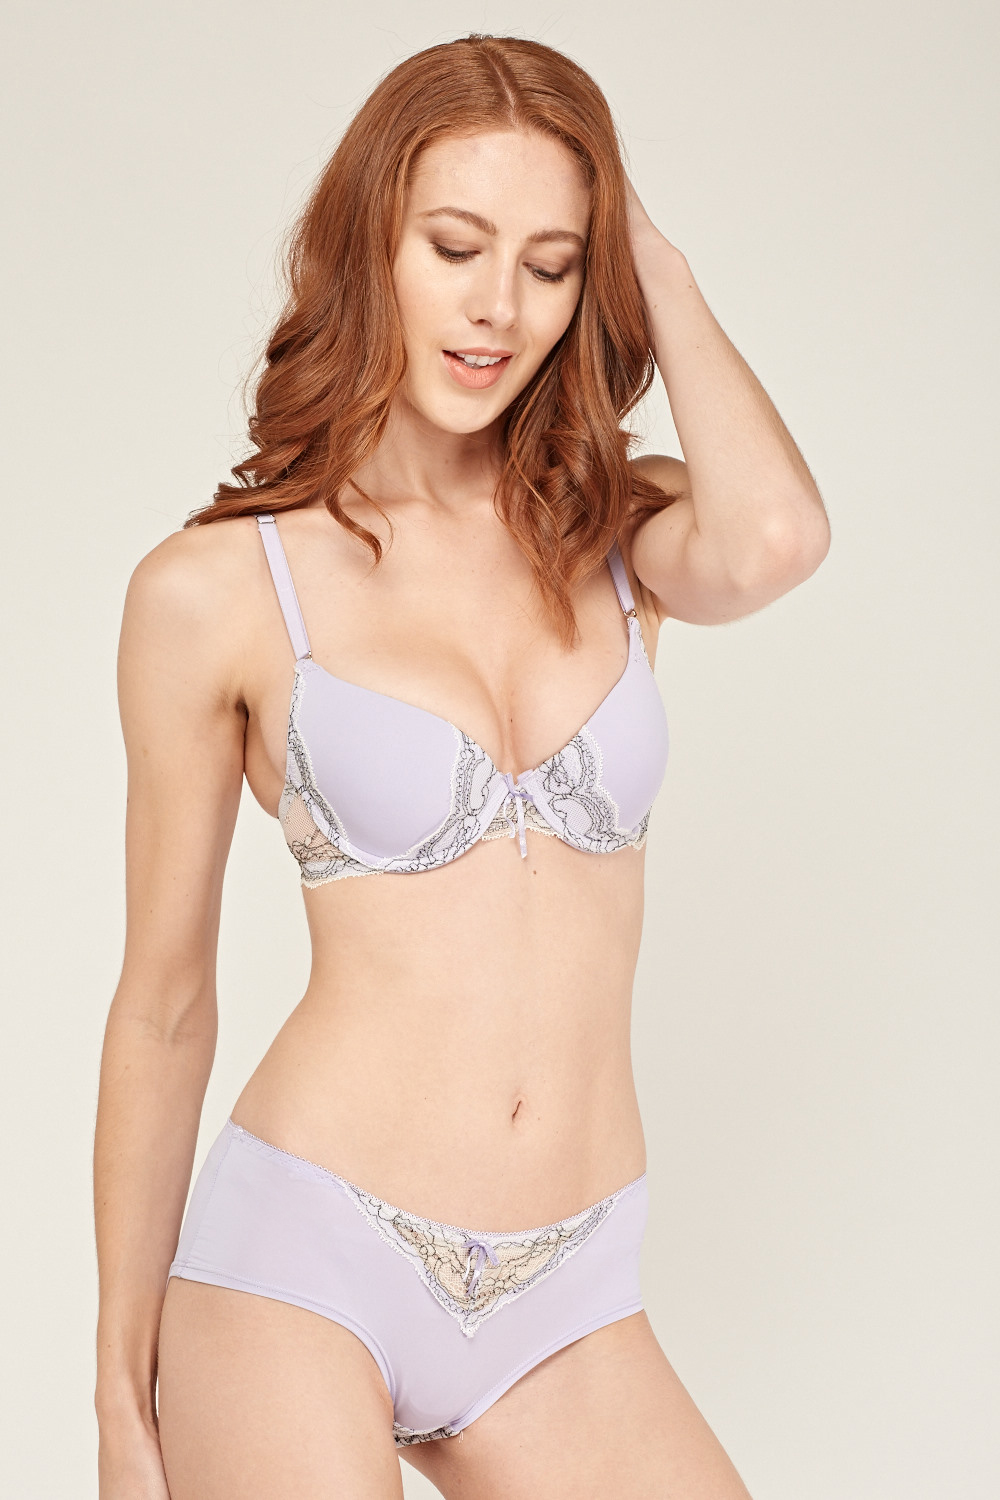 ad0991ef3c9 Lace Insert Bra And Brief Set - Lilac/Off White or Aqua/Off White ...